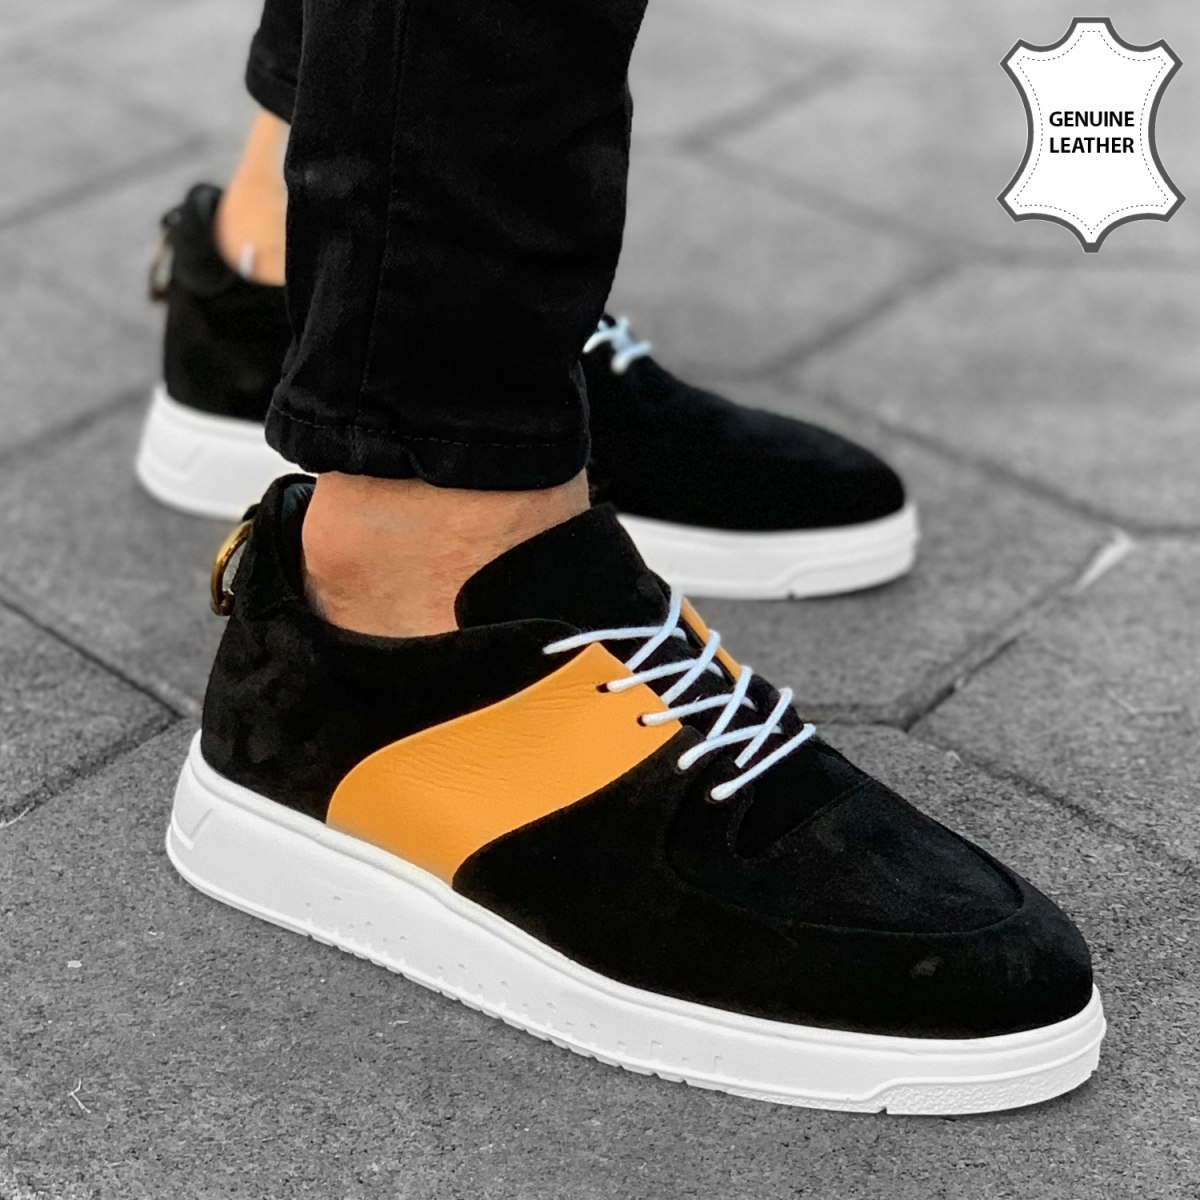 Premium Leather Steel-Ringed Sneakers in Black-Yellow Mv Premium Brand - 1